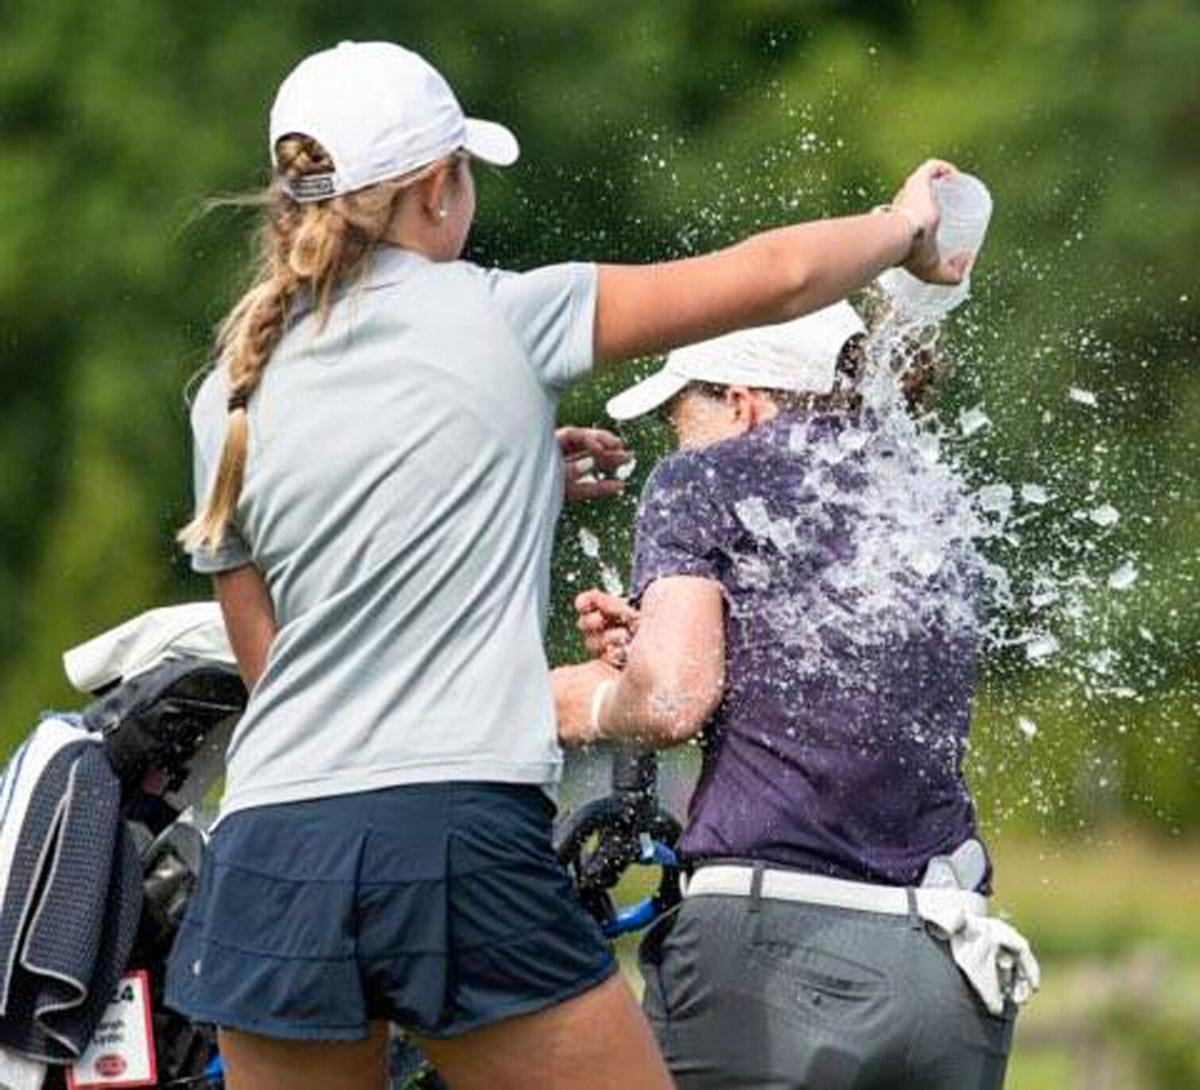 Sawyer Brockstedt douses Sarah Lydic after win